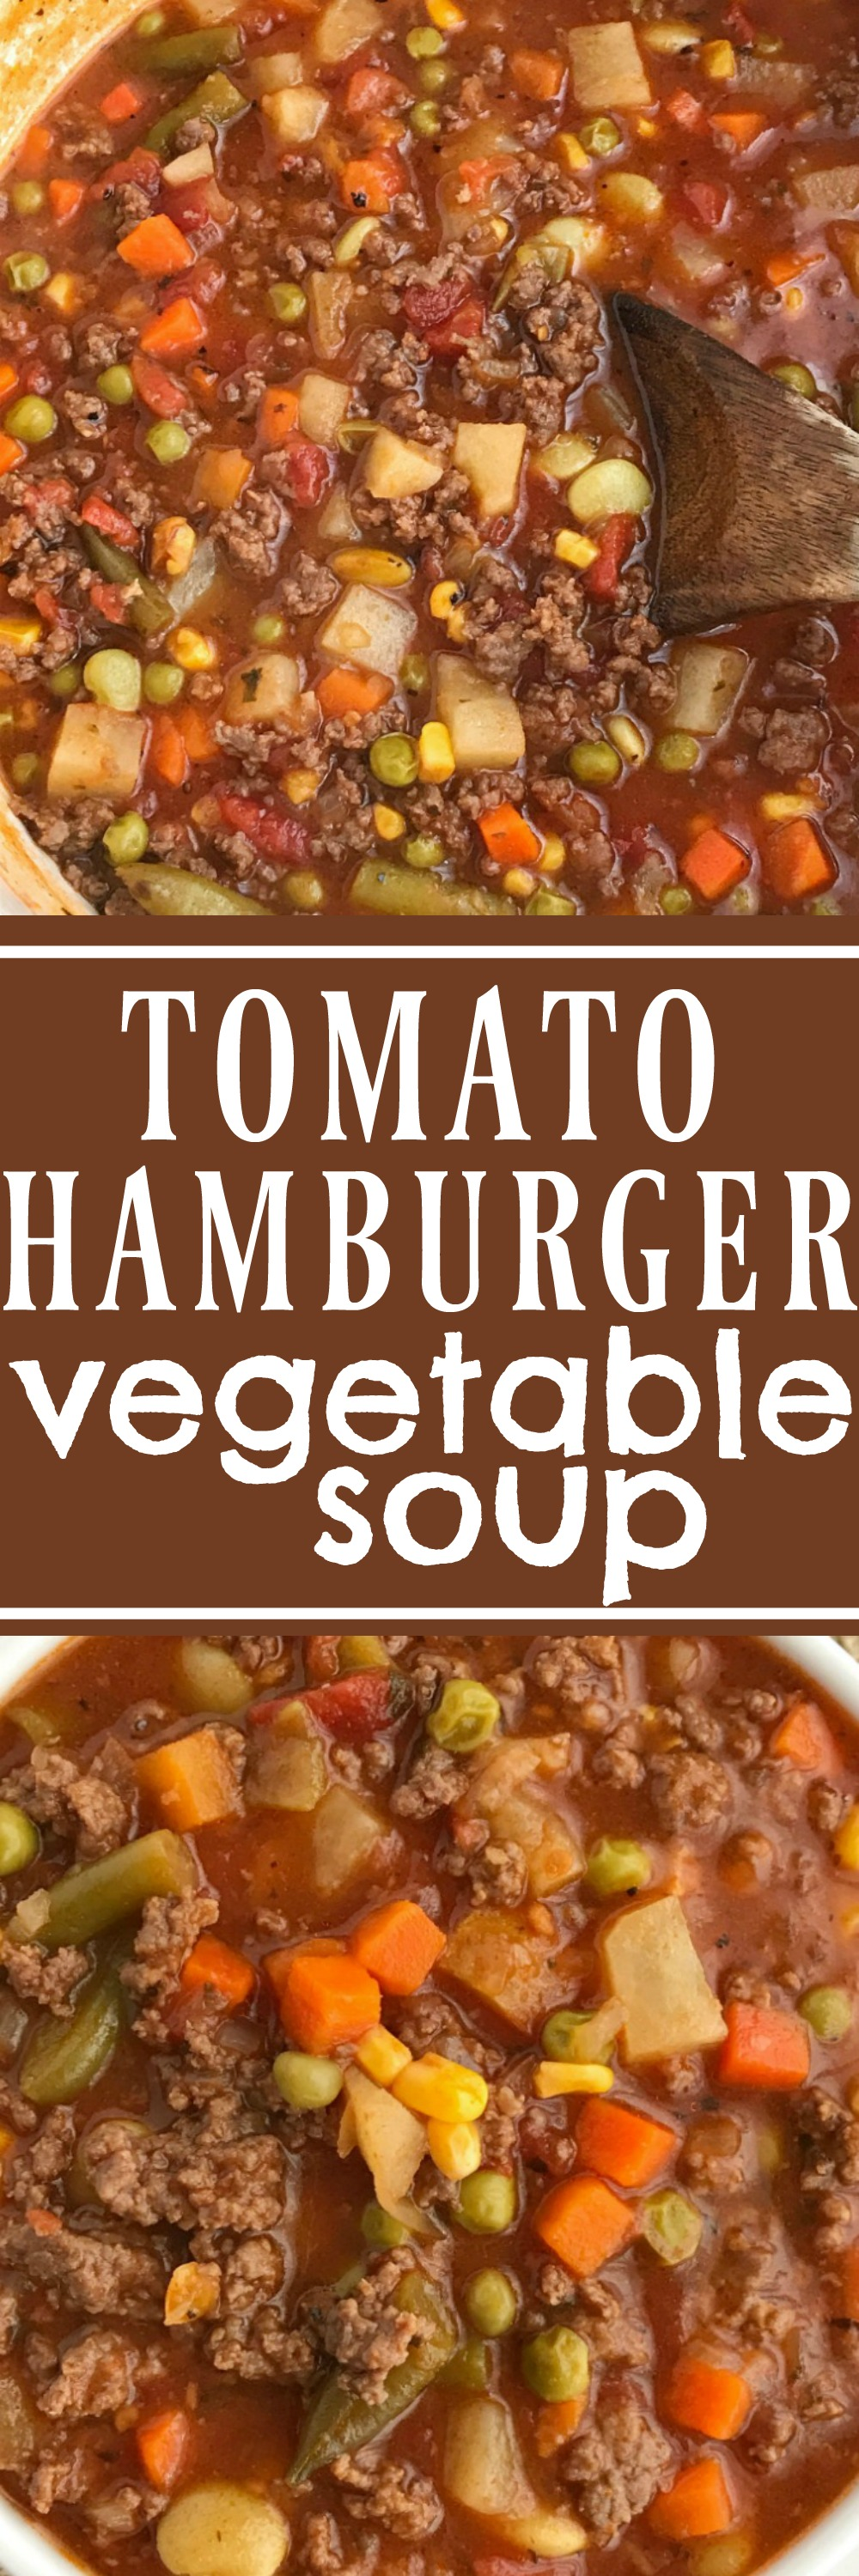 Tomato Hamburger Vegetable Soup Together As Family